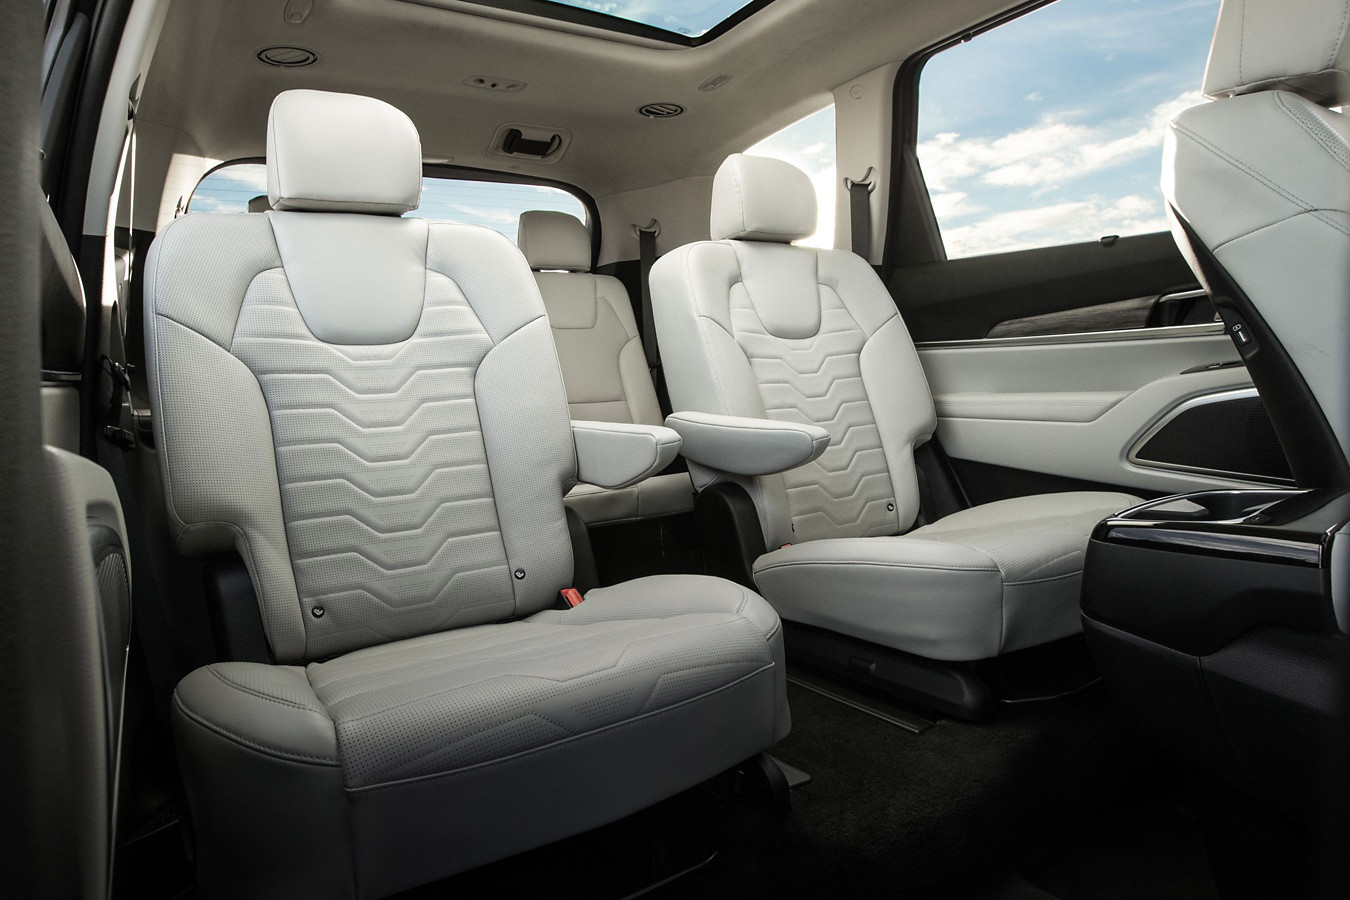 Luxurious Seating Options in the 2020 Telluride